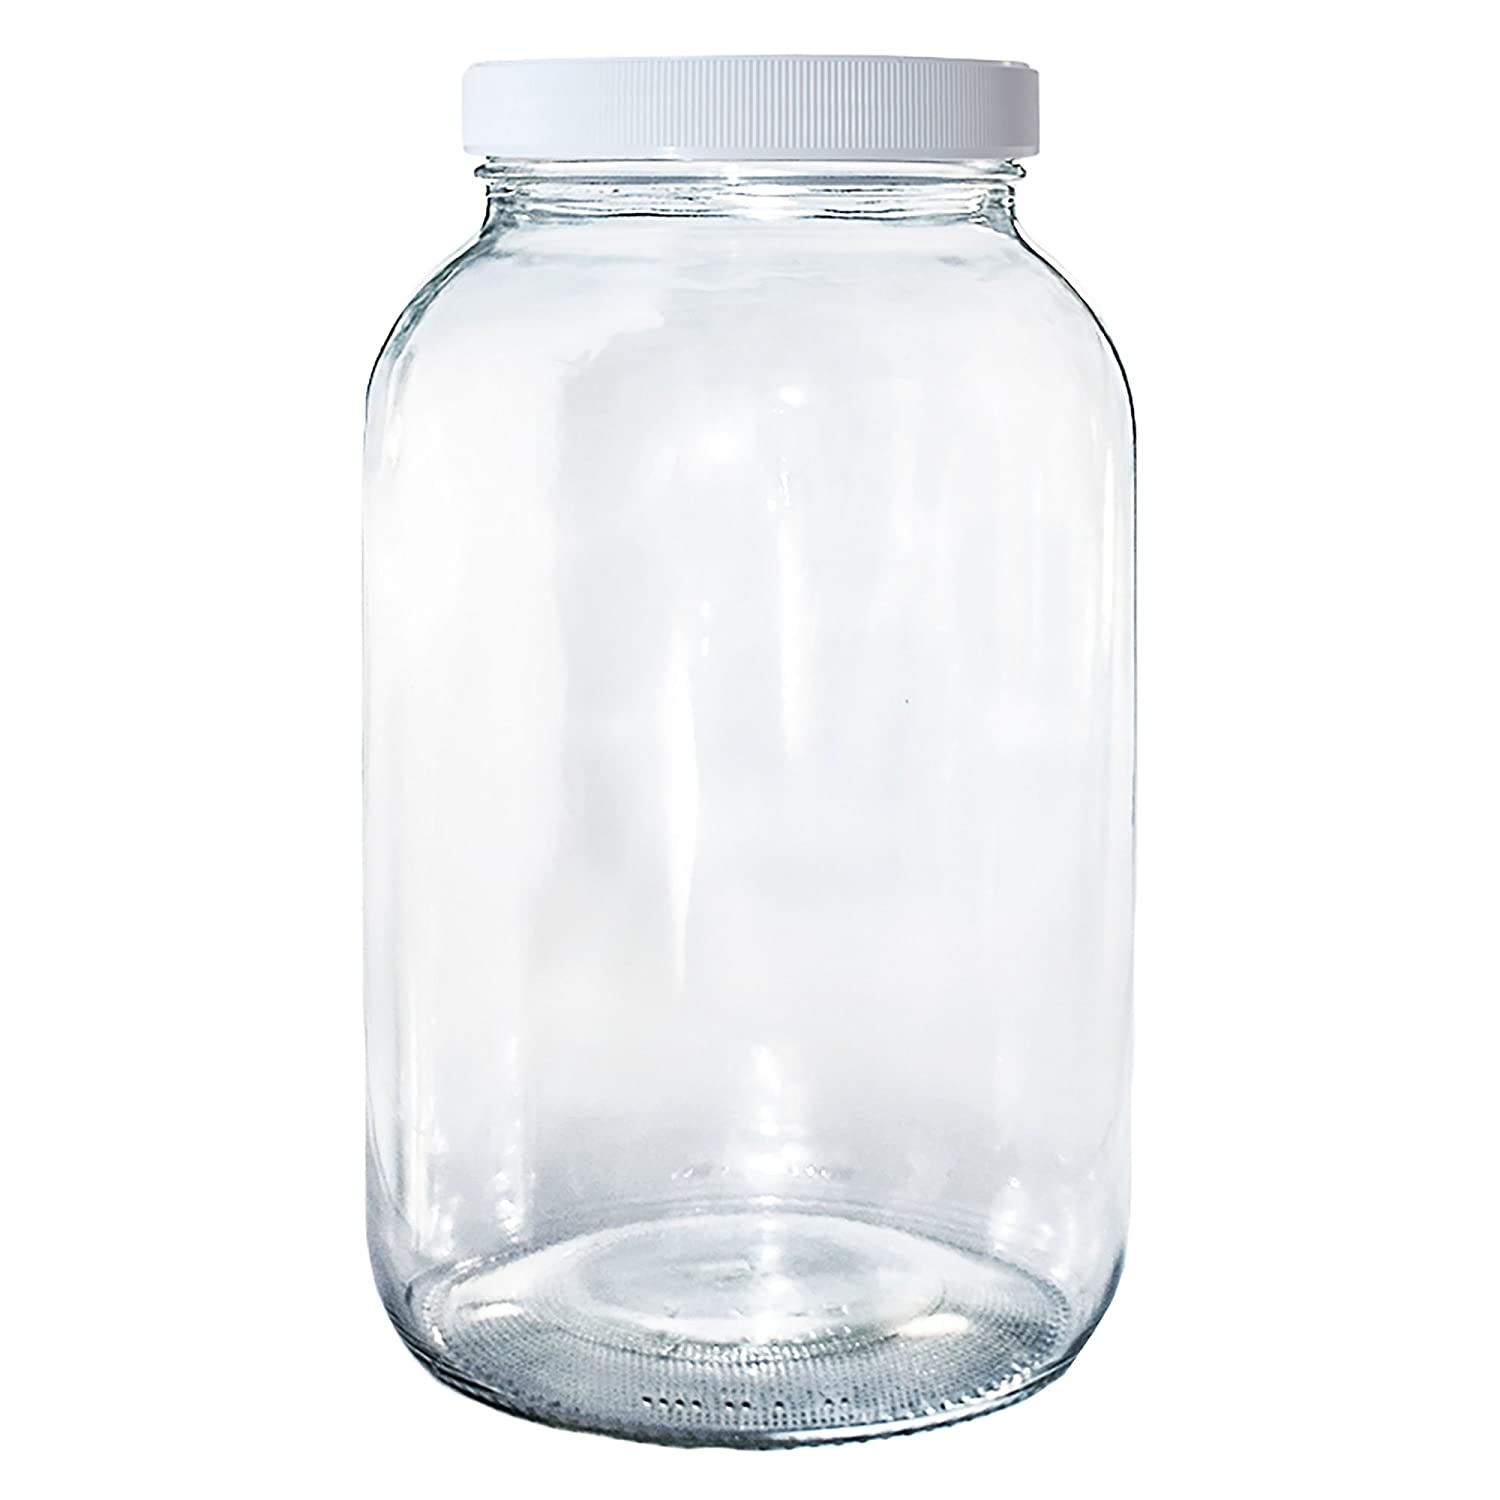 (1 Pack) 1 Gallon Clear Glass Jar with White Plastic Cap (110/400) GBO GLASSBOTTLEOUTLET.COM